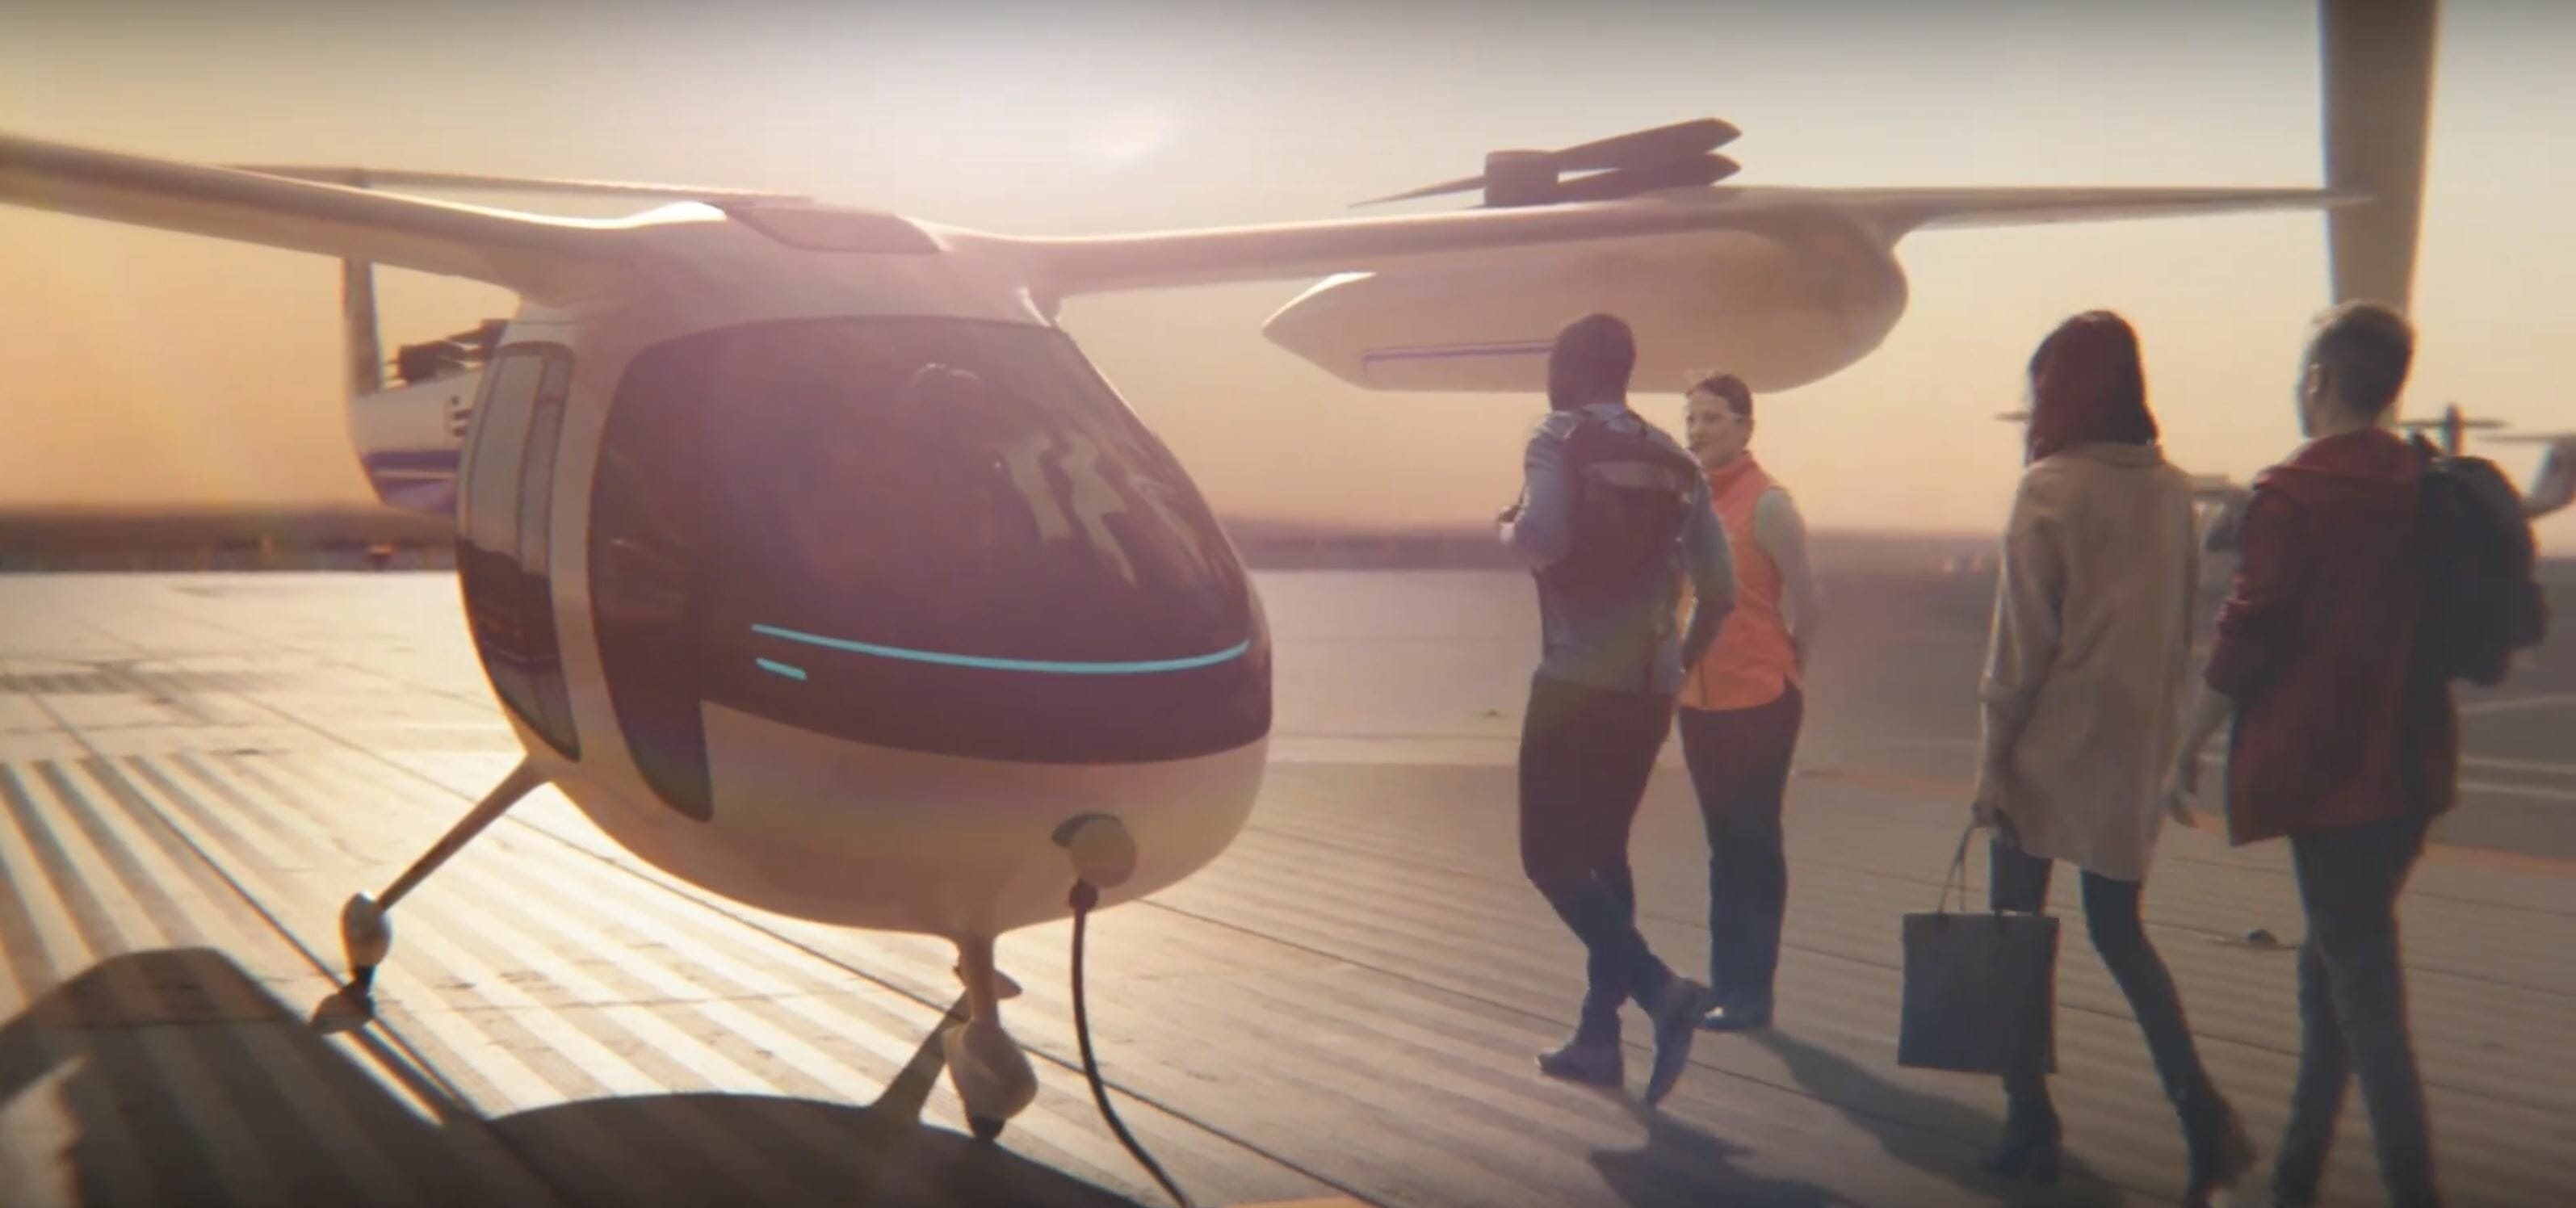 uberair uber elevate flying cars